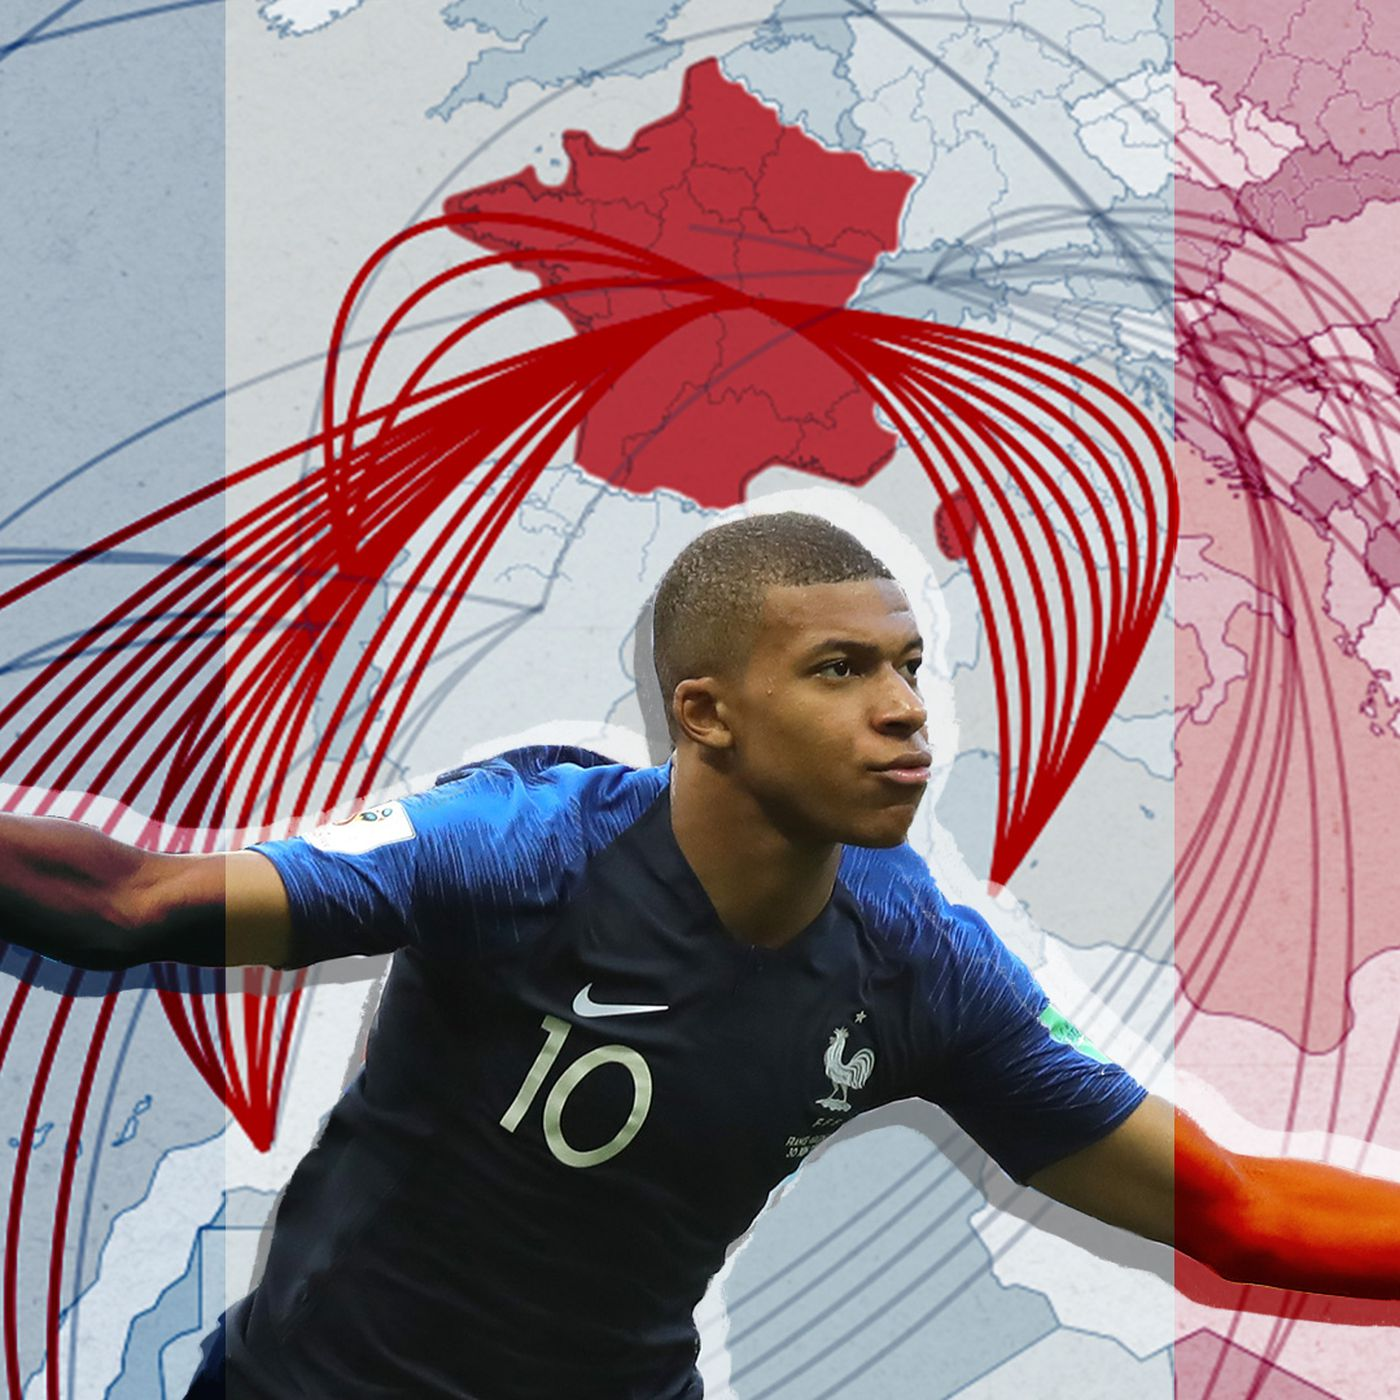 93b916e6dc6 France produces the most World Cup players. Here's why. - Vox